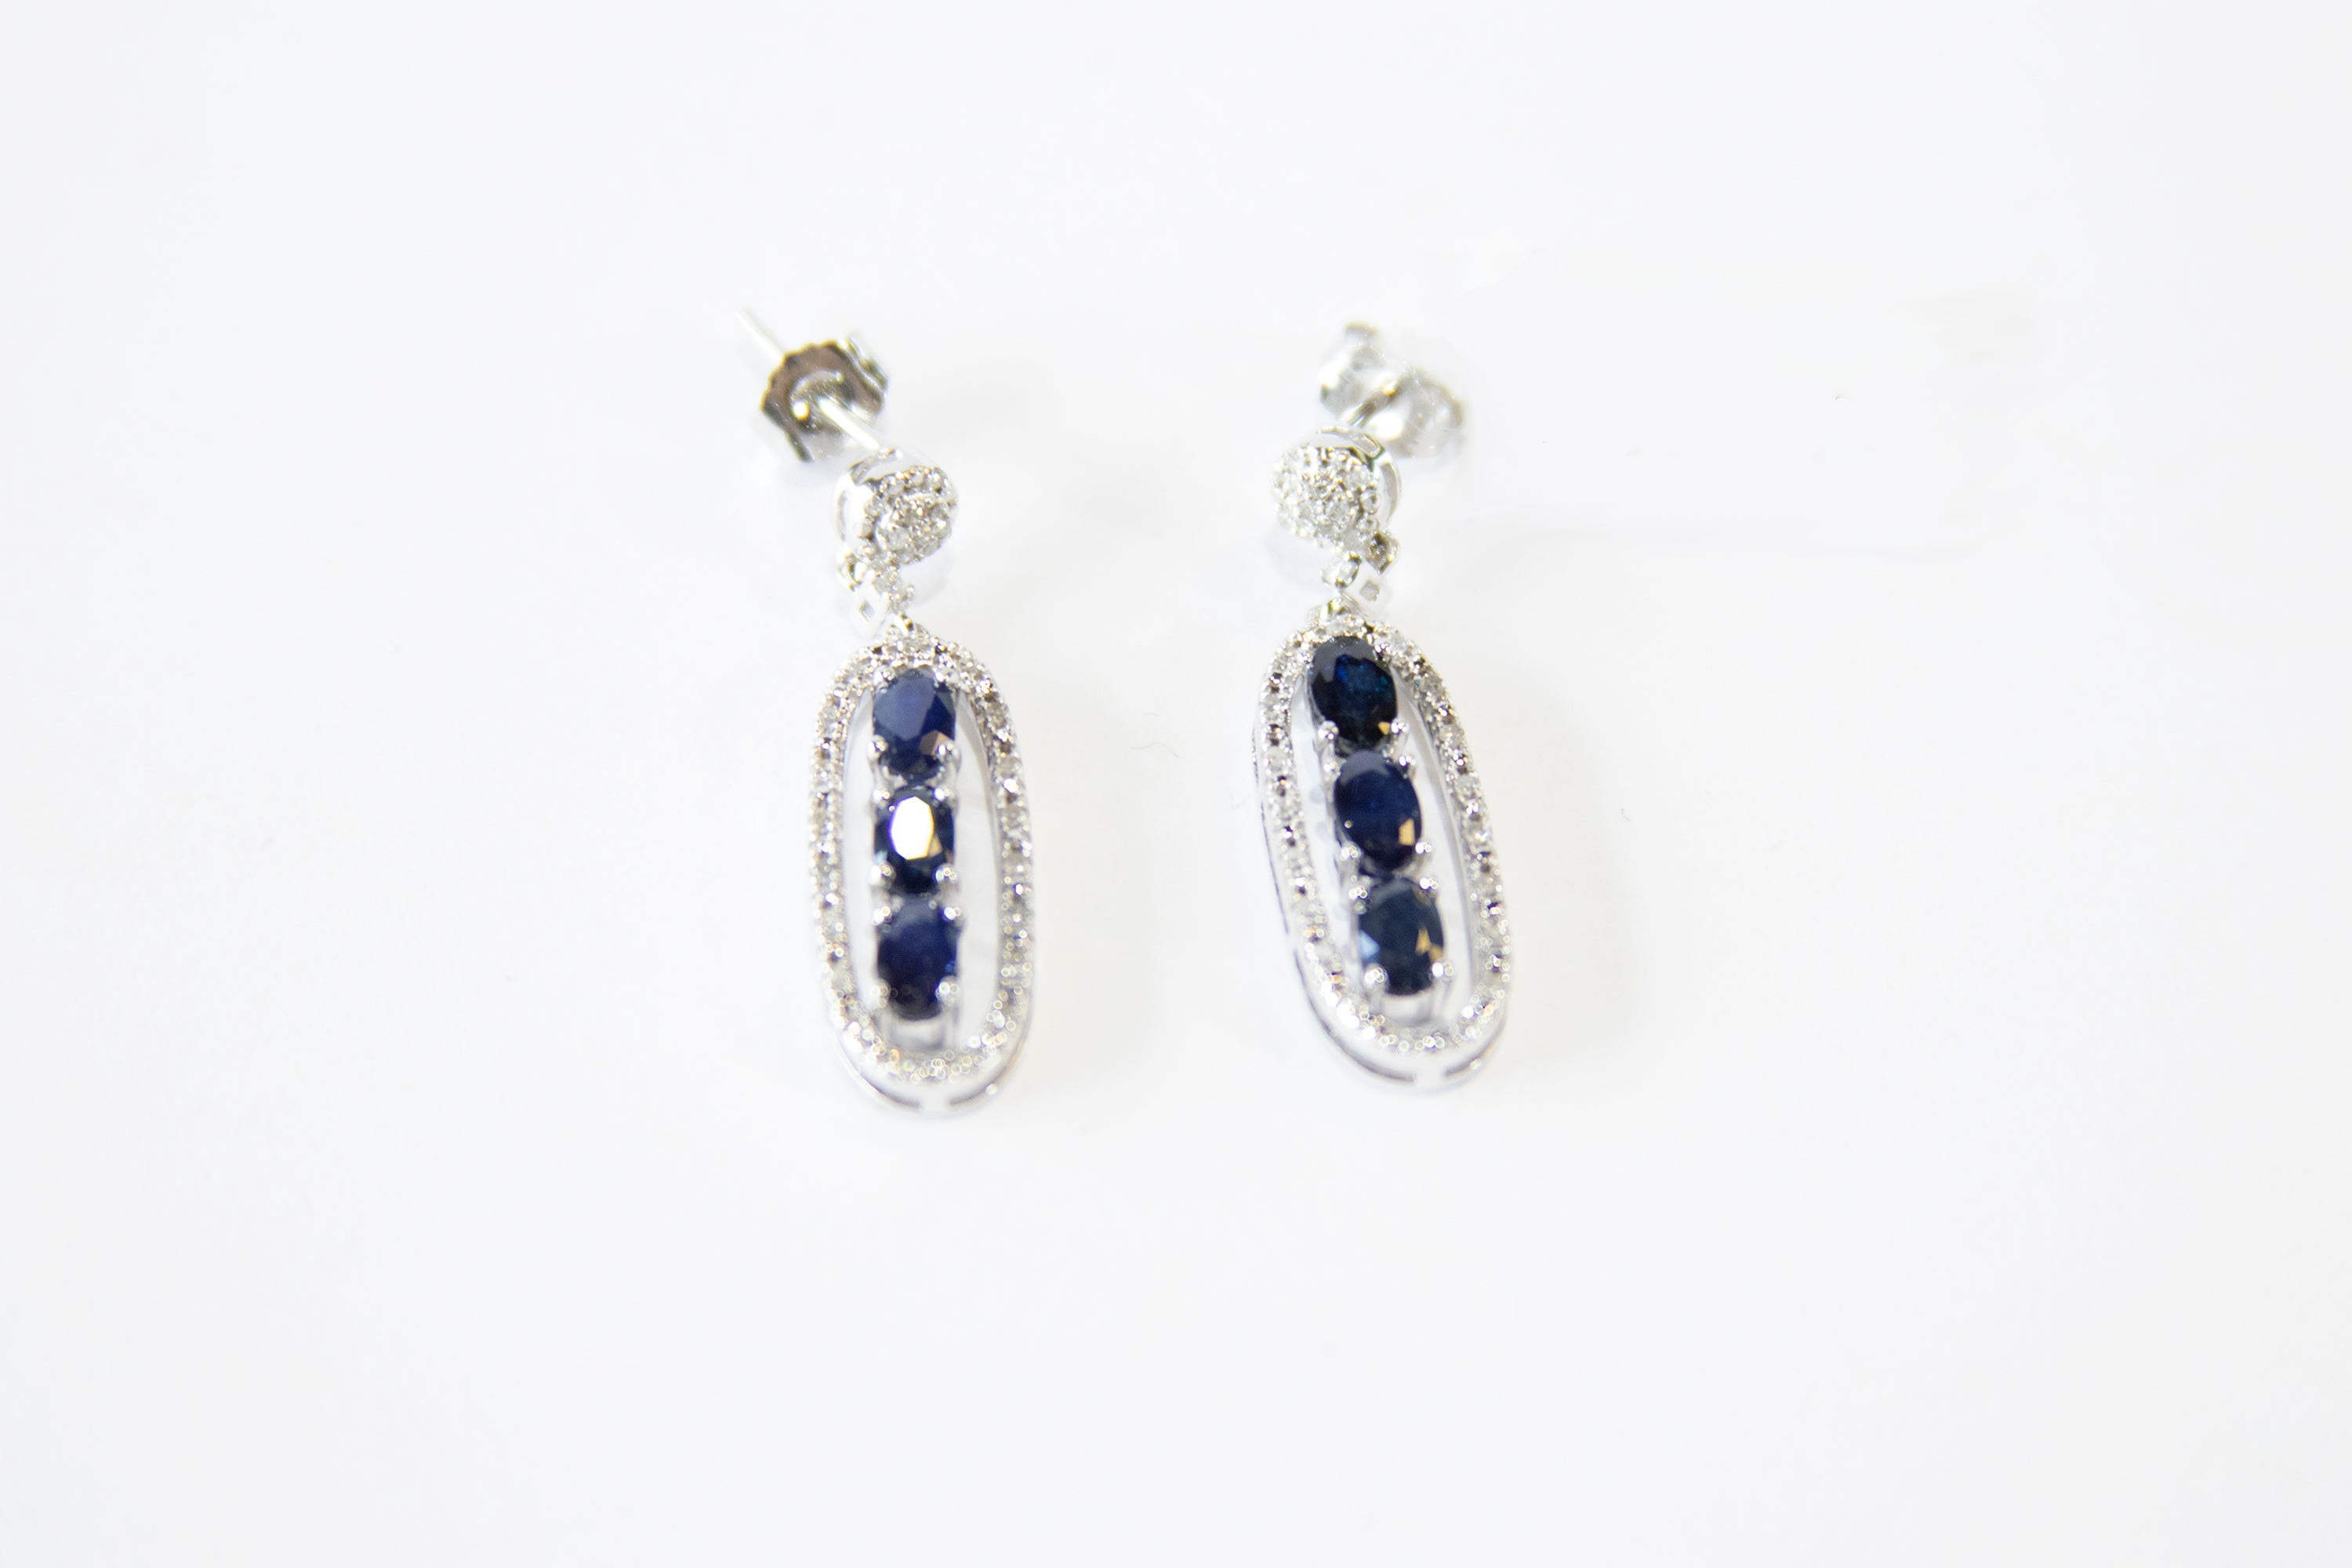 Diamond and Sapphire Link Earrings 14k